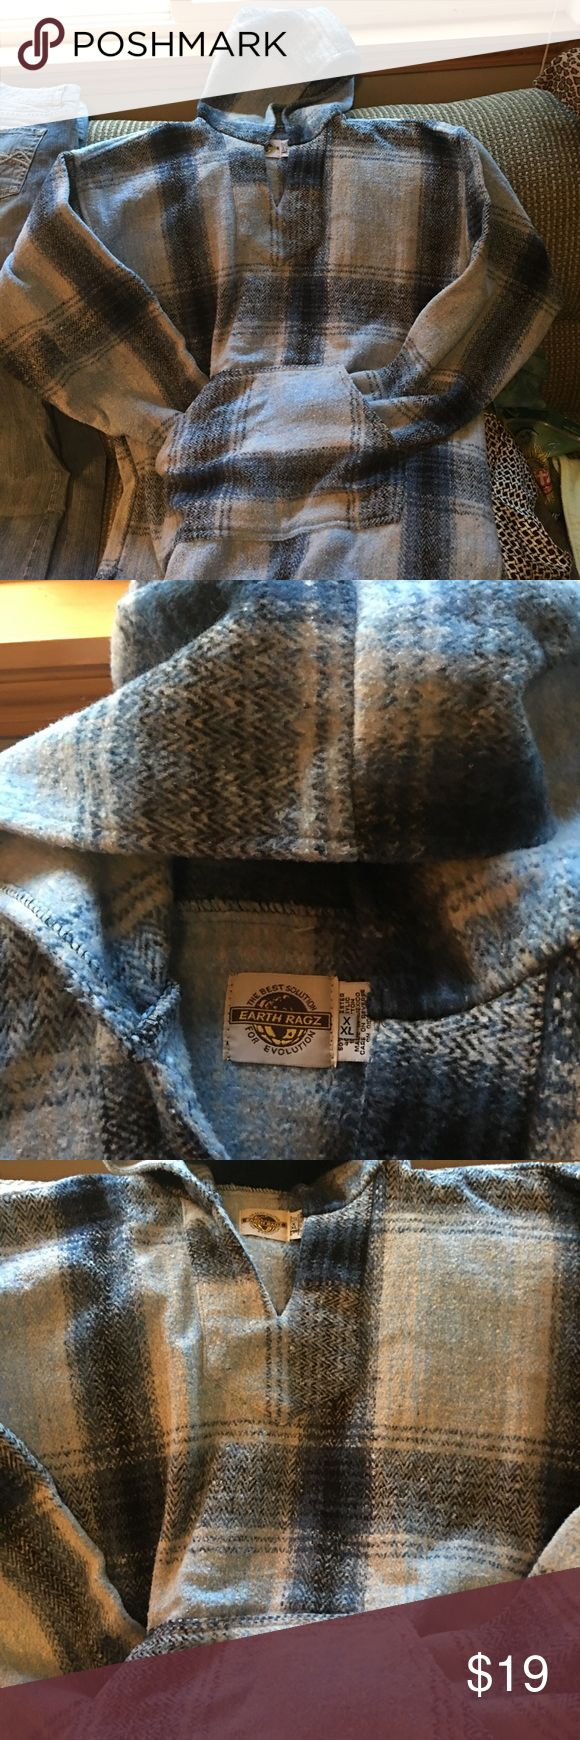 Mexican Poncho Shades of blue and gray, Mexican Poncho. Only worn a few times. Earth Ragz Other